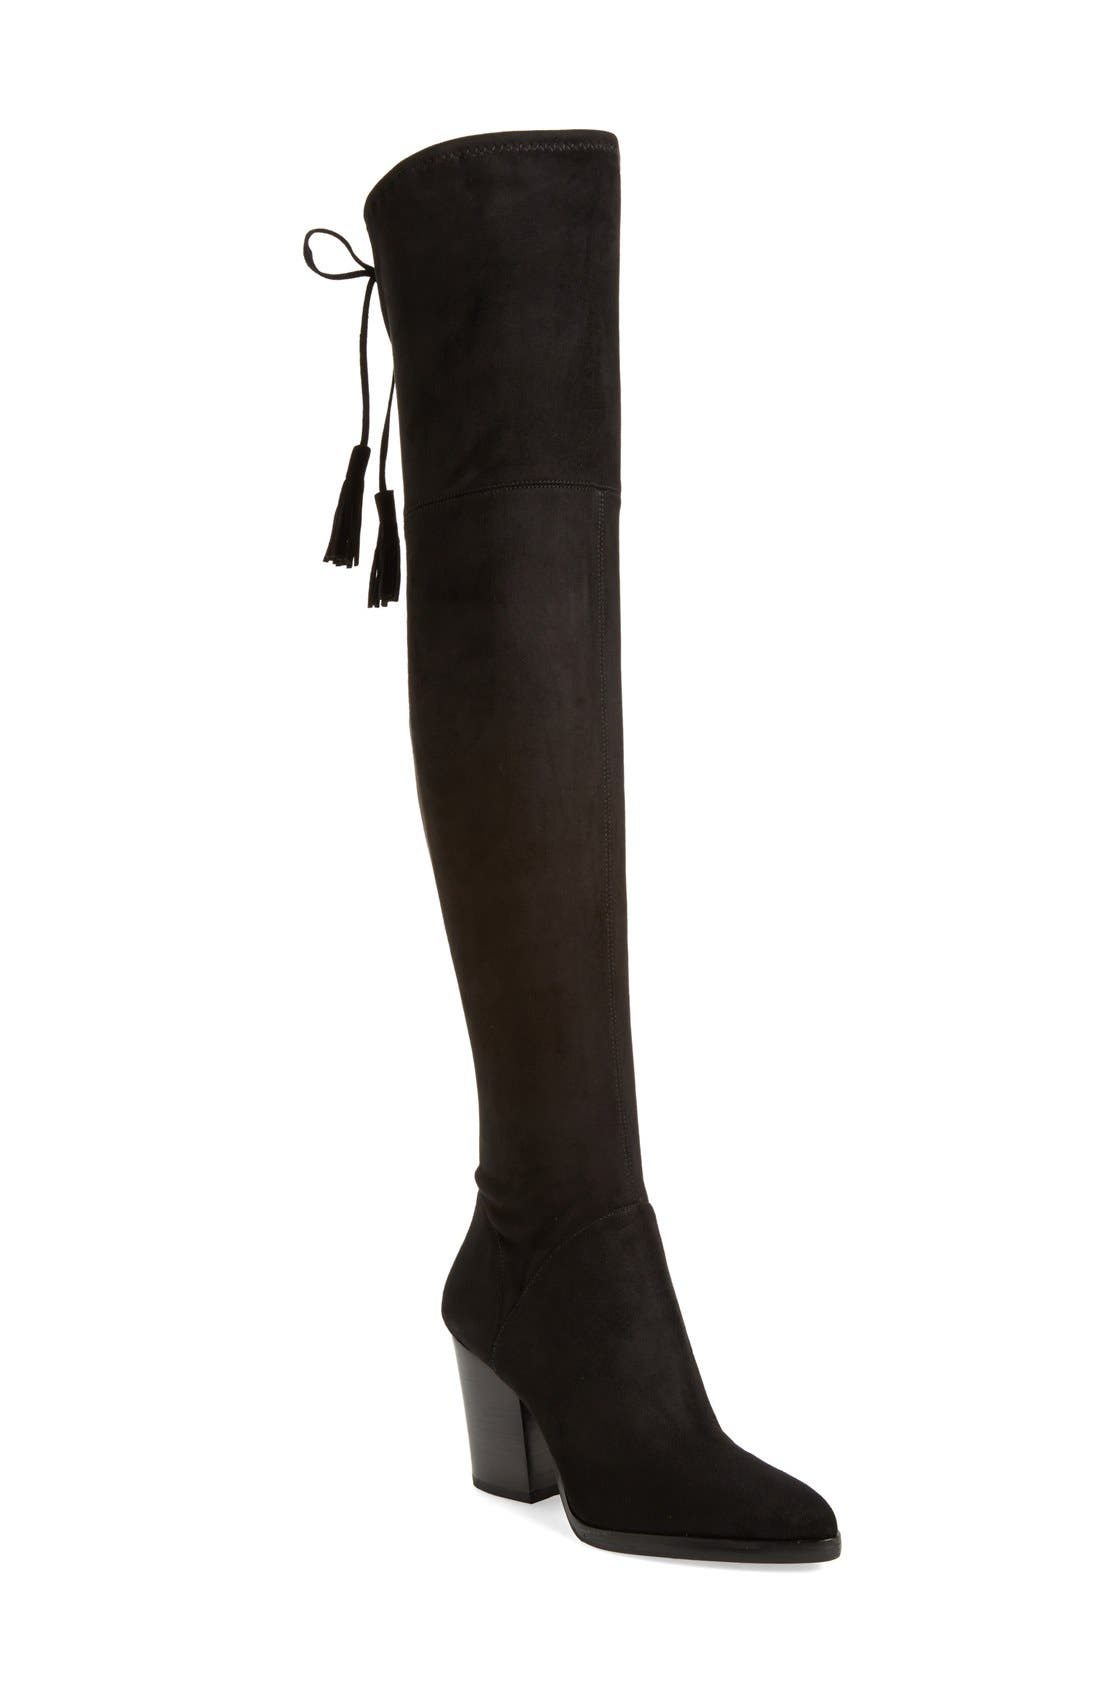 MARC FISHER LTD, Alinda Over the Knee Boot, Main thumbnail 1, color, BLACK STRETCH FABRIC